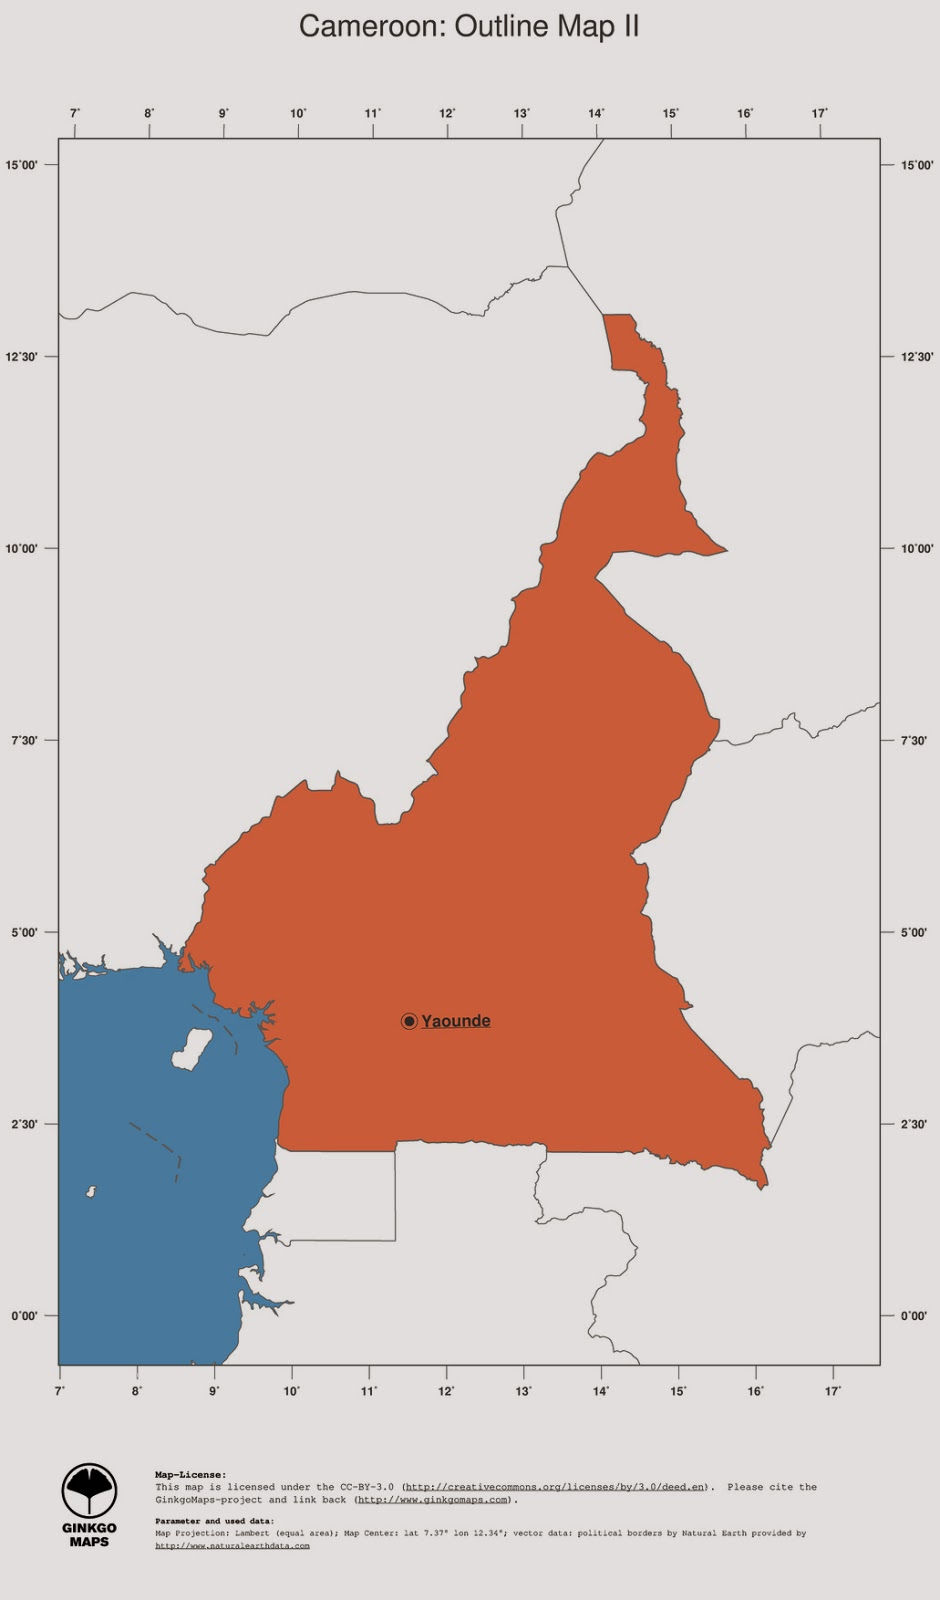 free maps download Cameroon map